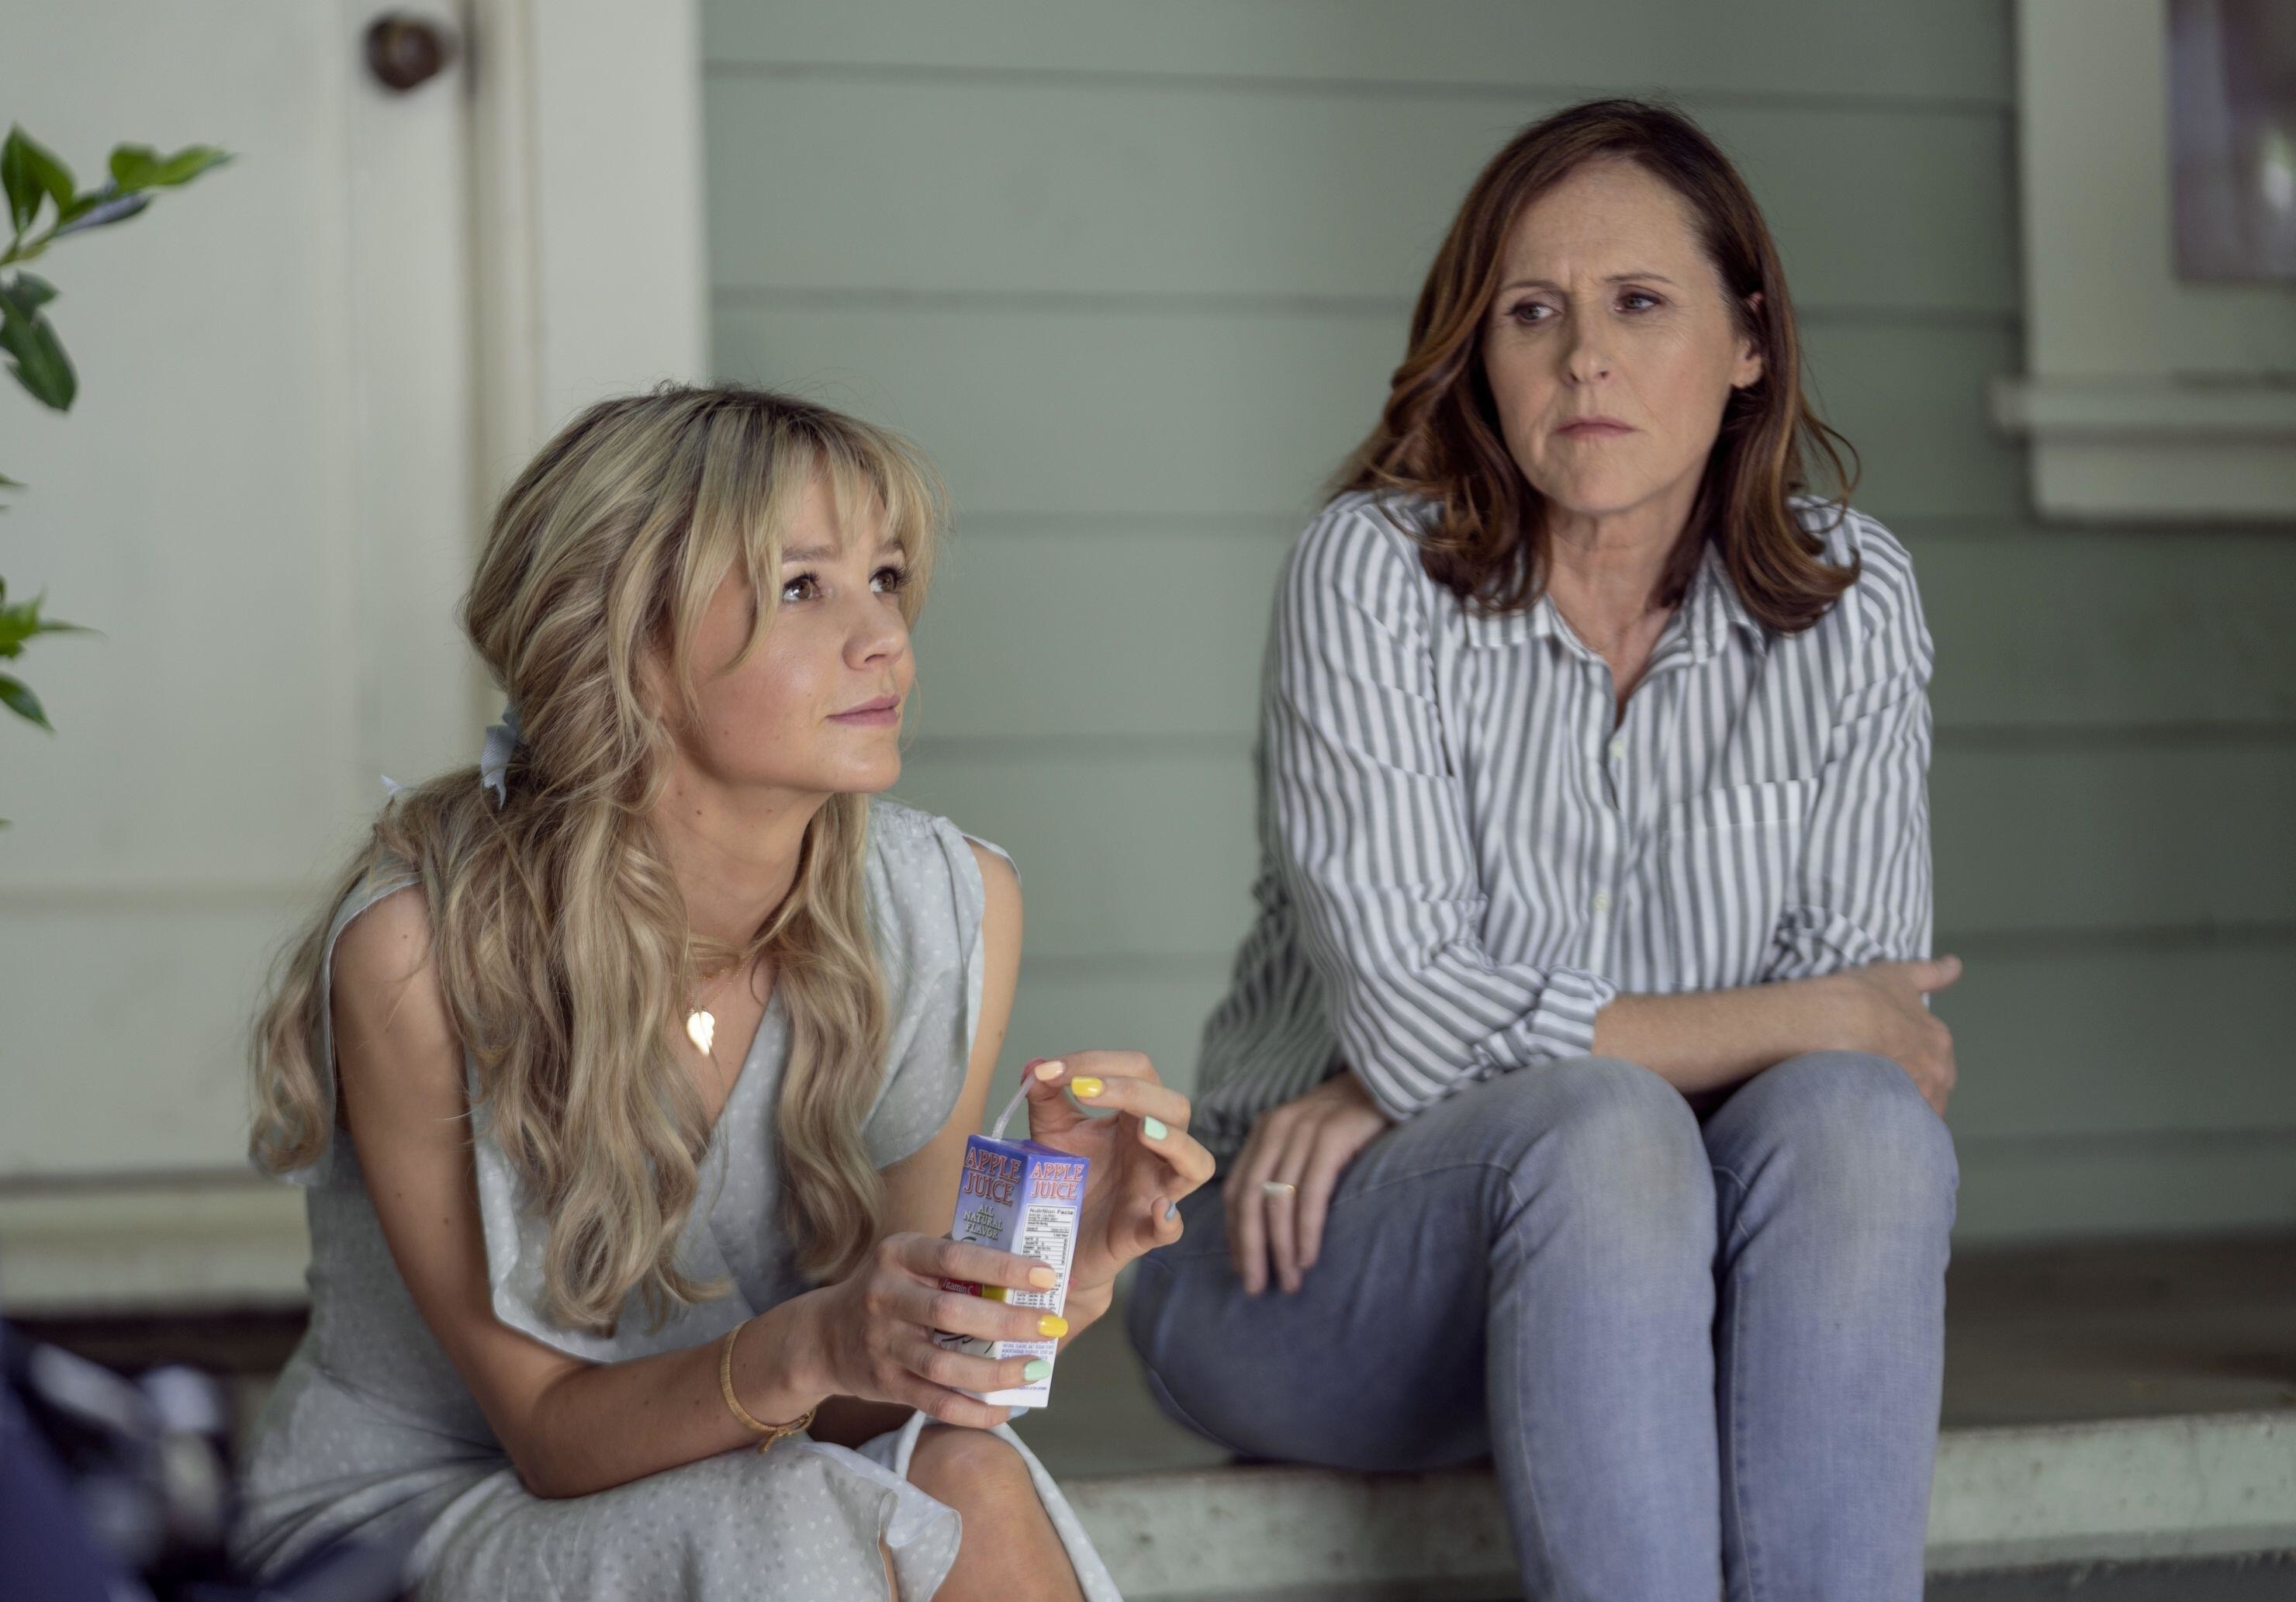 Carey Mulligan drinks a juice box as she talks with Molly Shannon on a front porch